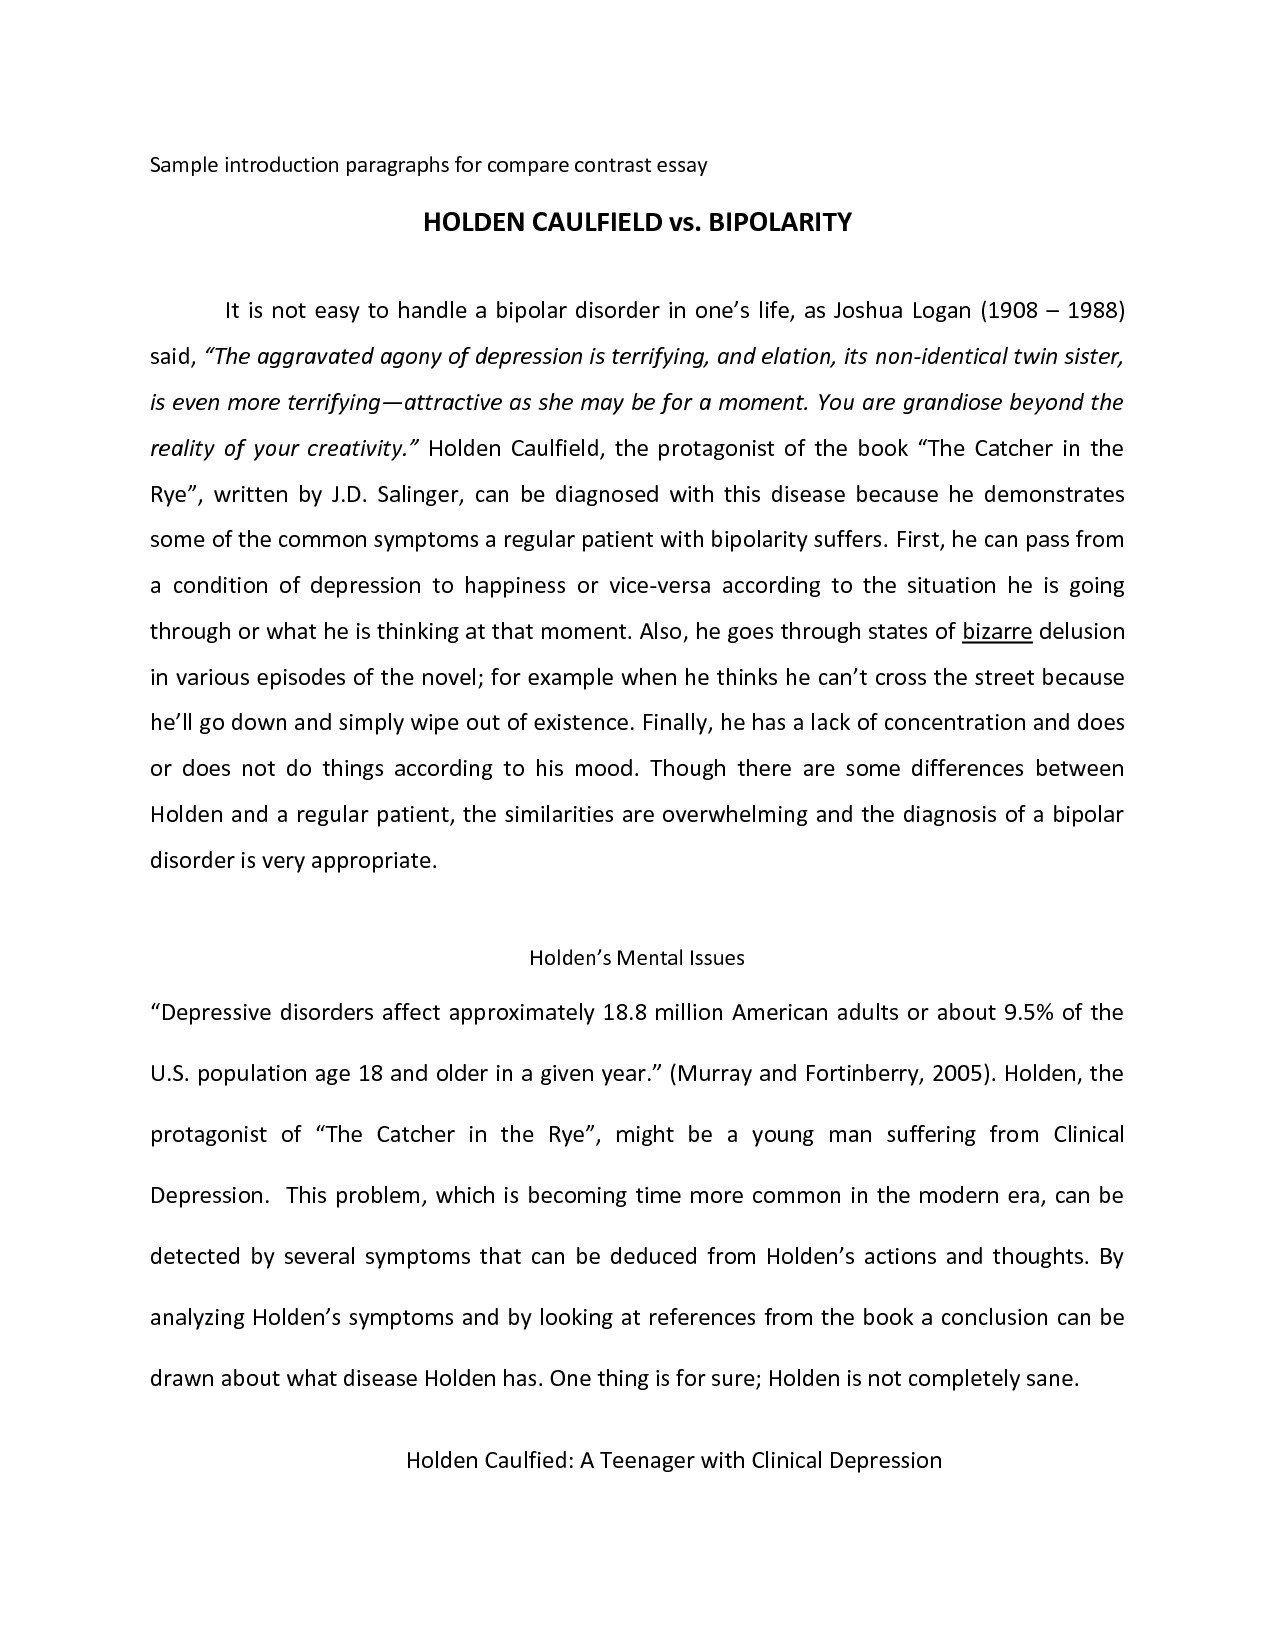 10 Best Ideas For Compare And Contrast Essay examples of compare and contrast essays example compare contrast 2020